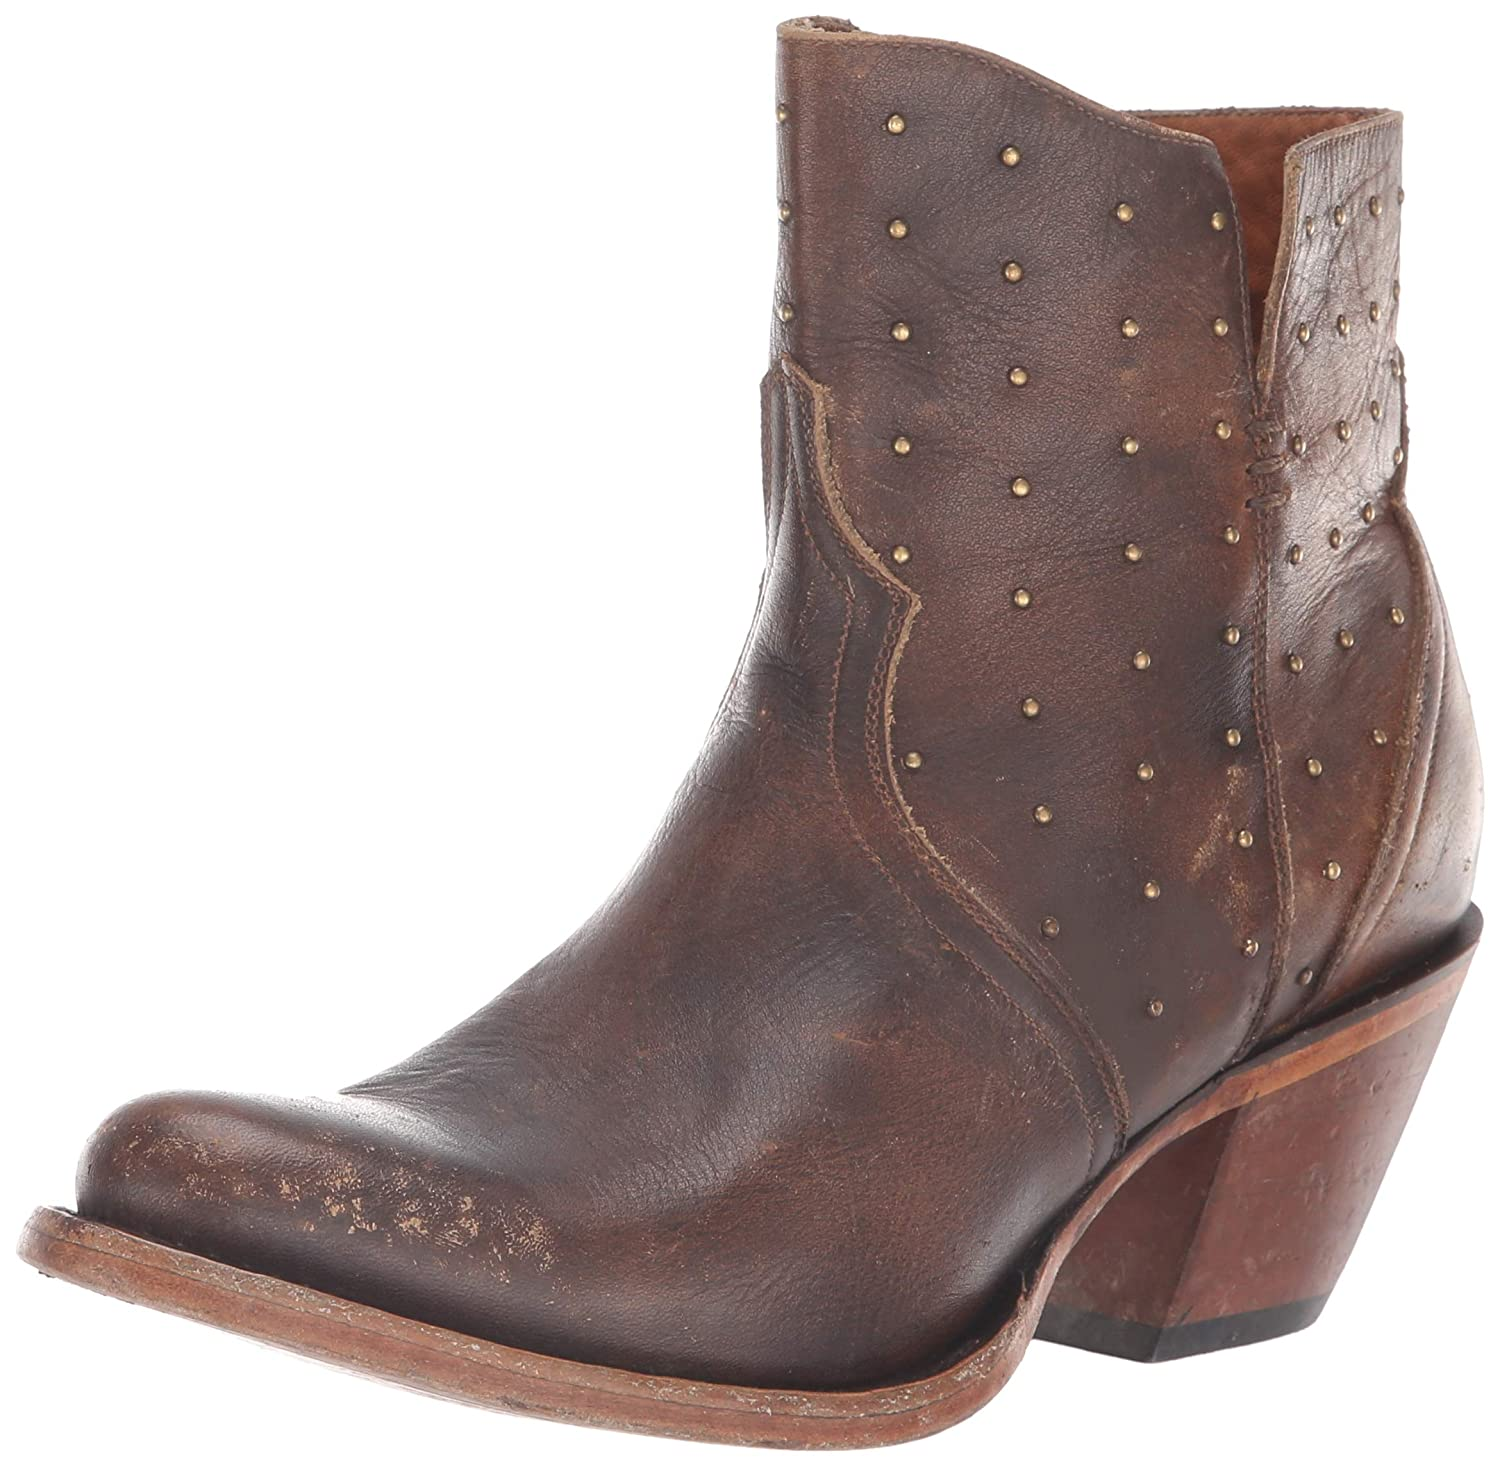 Chocolate Lucchese Women's Harley Fashion Booties Round Toe